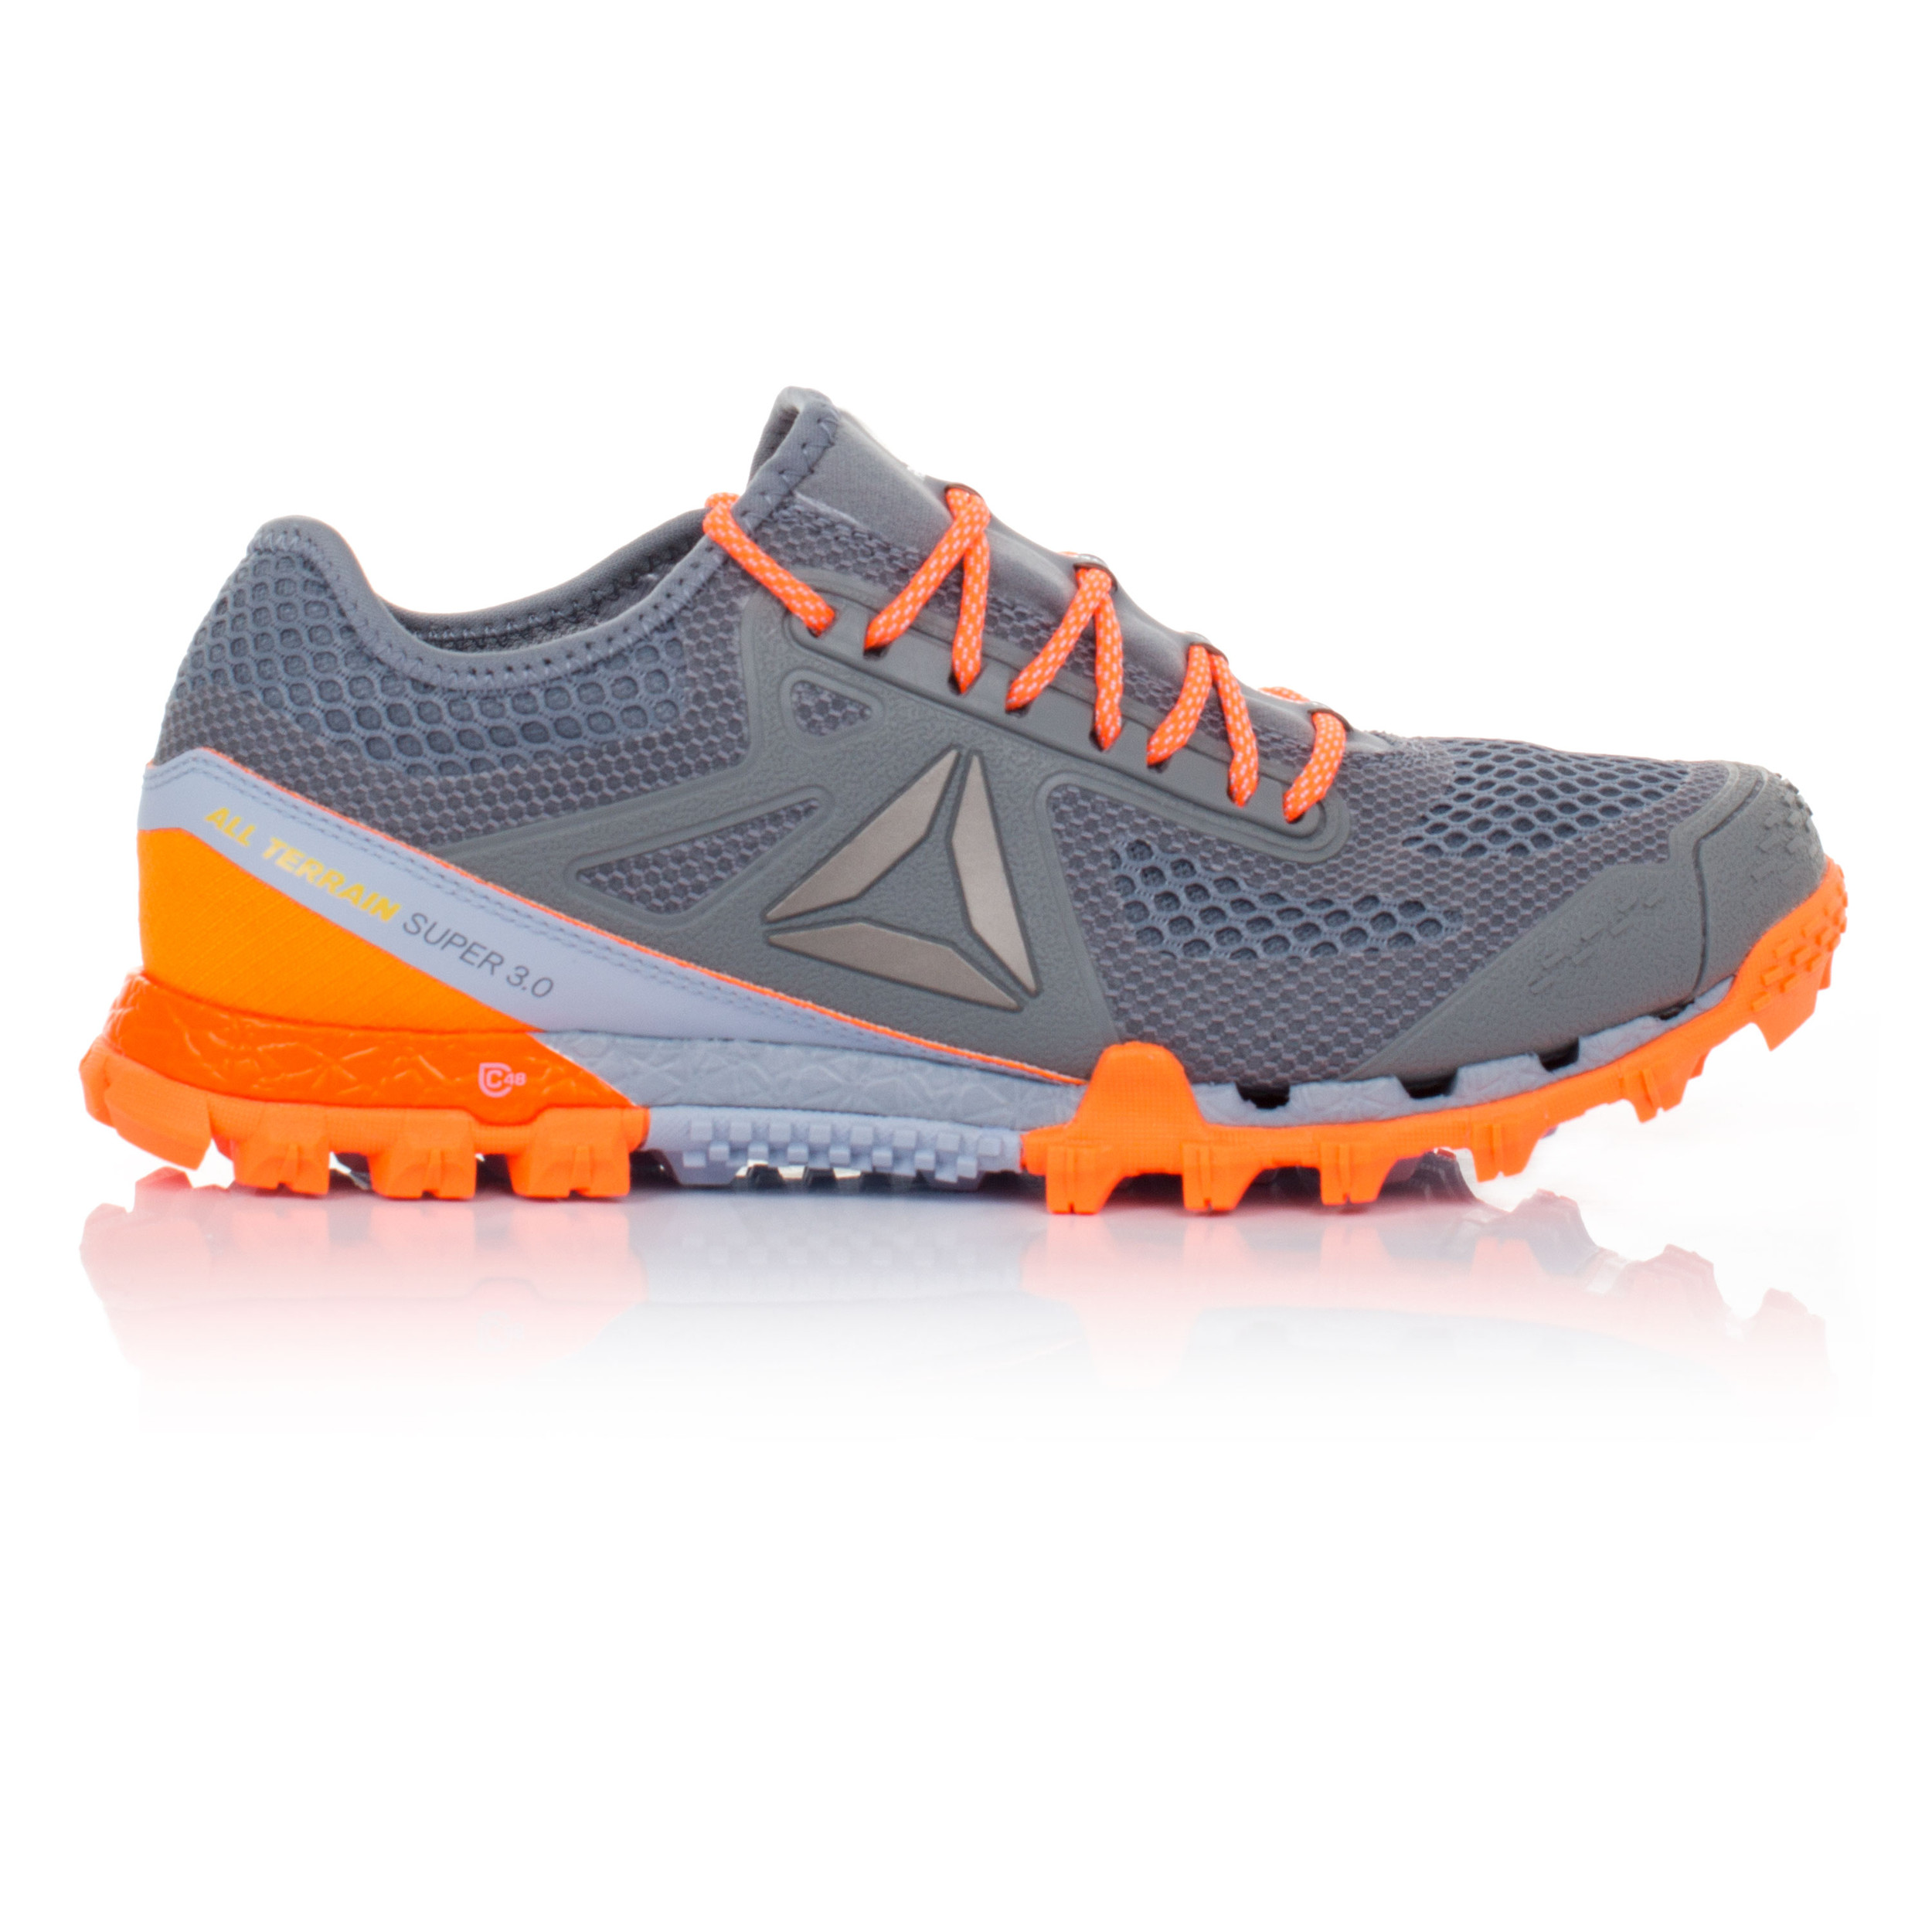 Reebok Trail Shoes Uk